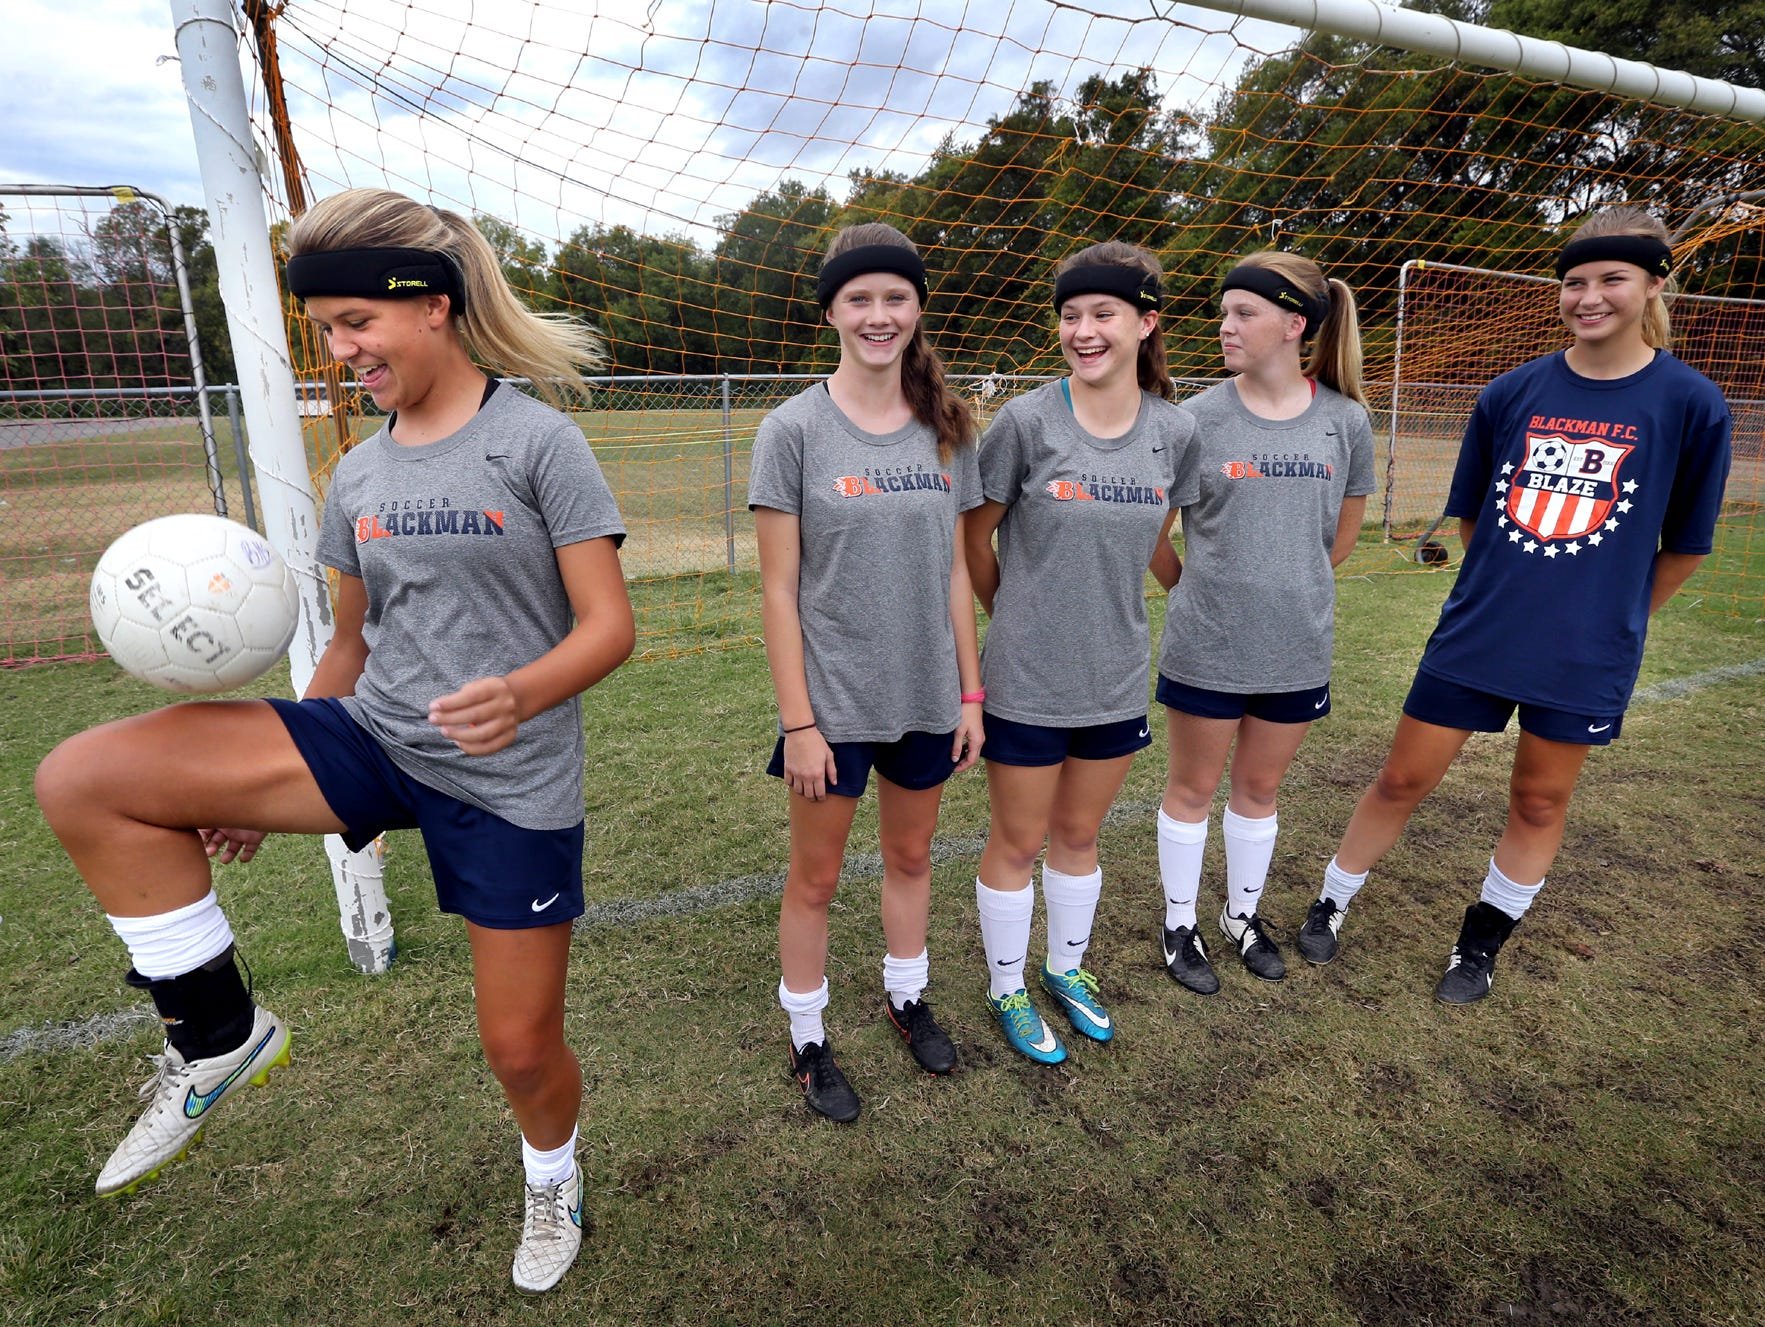 Blackman's Kenzi Vetter, a sophomore, left juggles the soccer ball while wearing a headband that all Blackman girls soccer players must wear before getting on the field for either a game or practice, on Monday, Sept. 28, 2015, before a game against Smyrna. The headbands are suppose to lessen the chances of receiving a concussion. Vetter's teammates (L to R) Katelyn Davis, a freshman, Emily Nash, a junior, Mallory Conlin, a sophomore, and Amelia Goodnight, a junior stand behind Vetter as she juggles the ball and are all wearing the same headband.